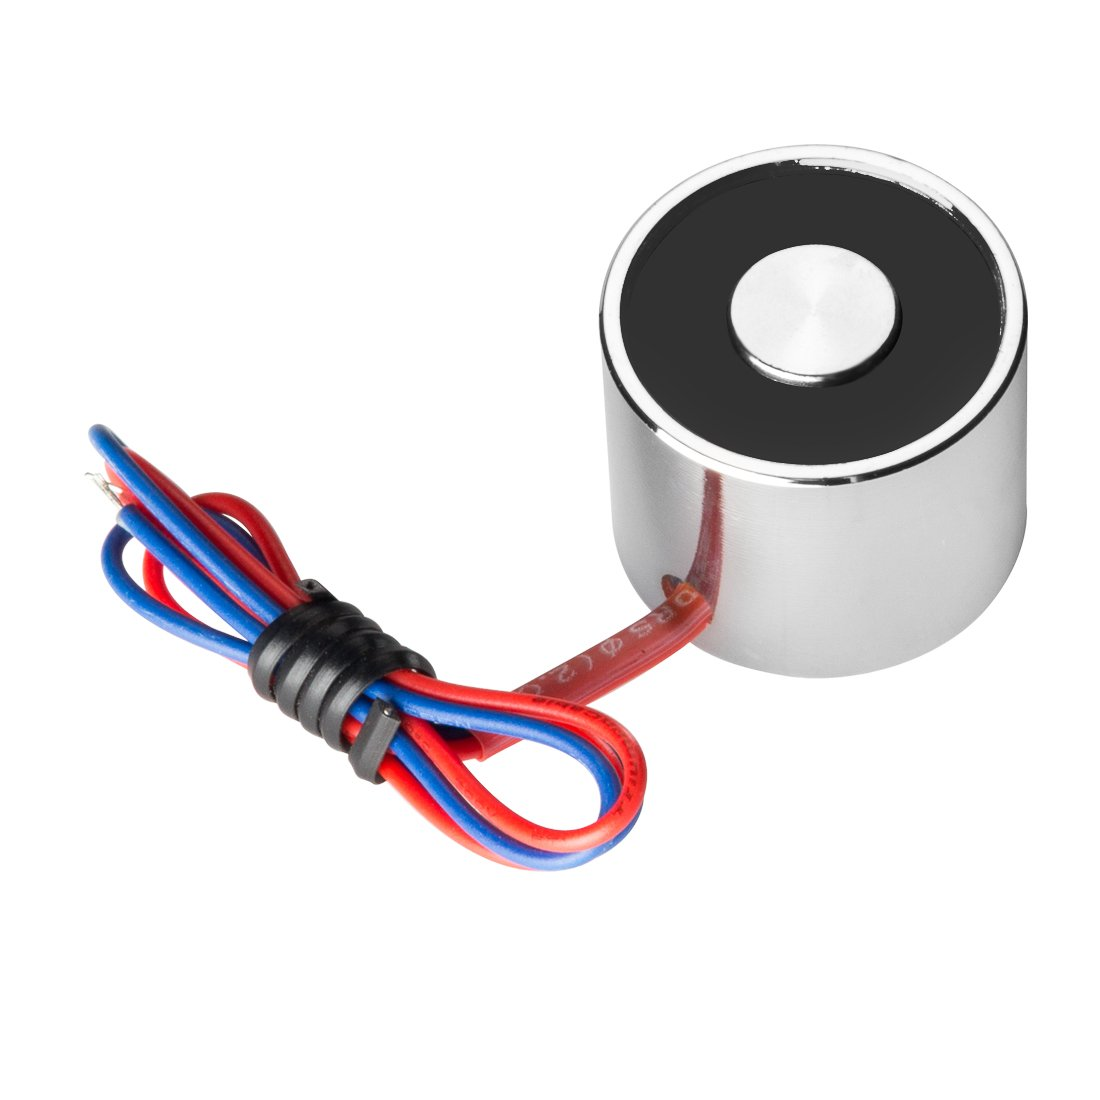 uxcell 5V 50N Electric Lifting Magnet Electromagnet Solenoid Lift Holding